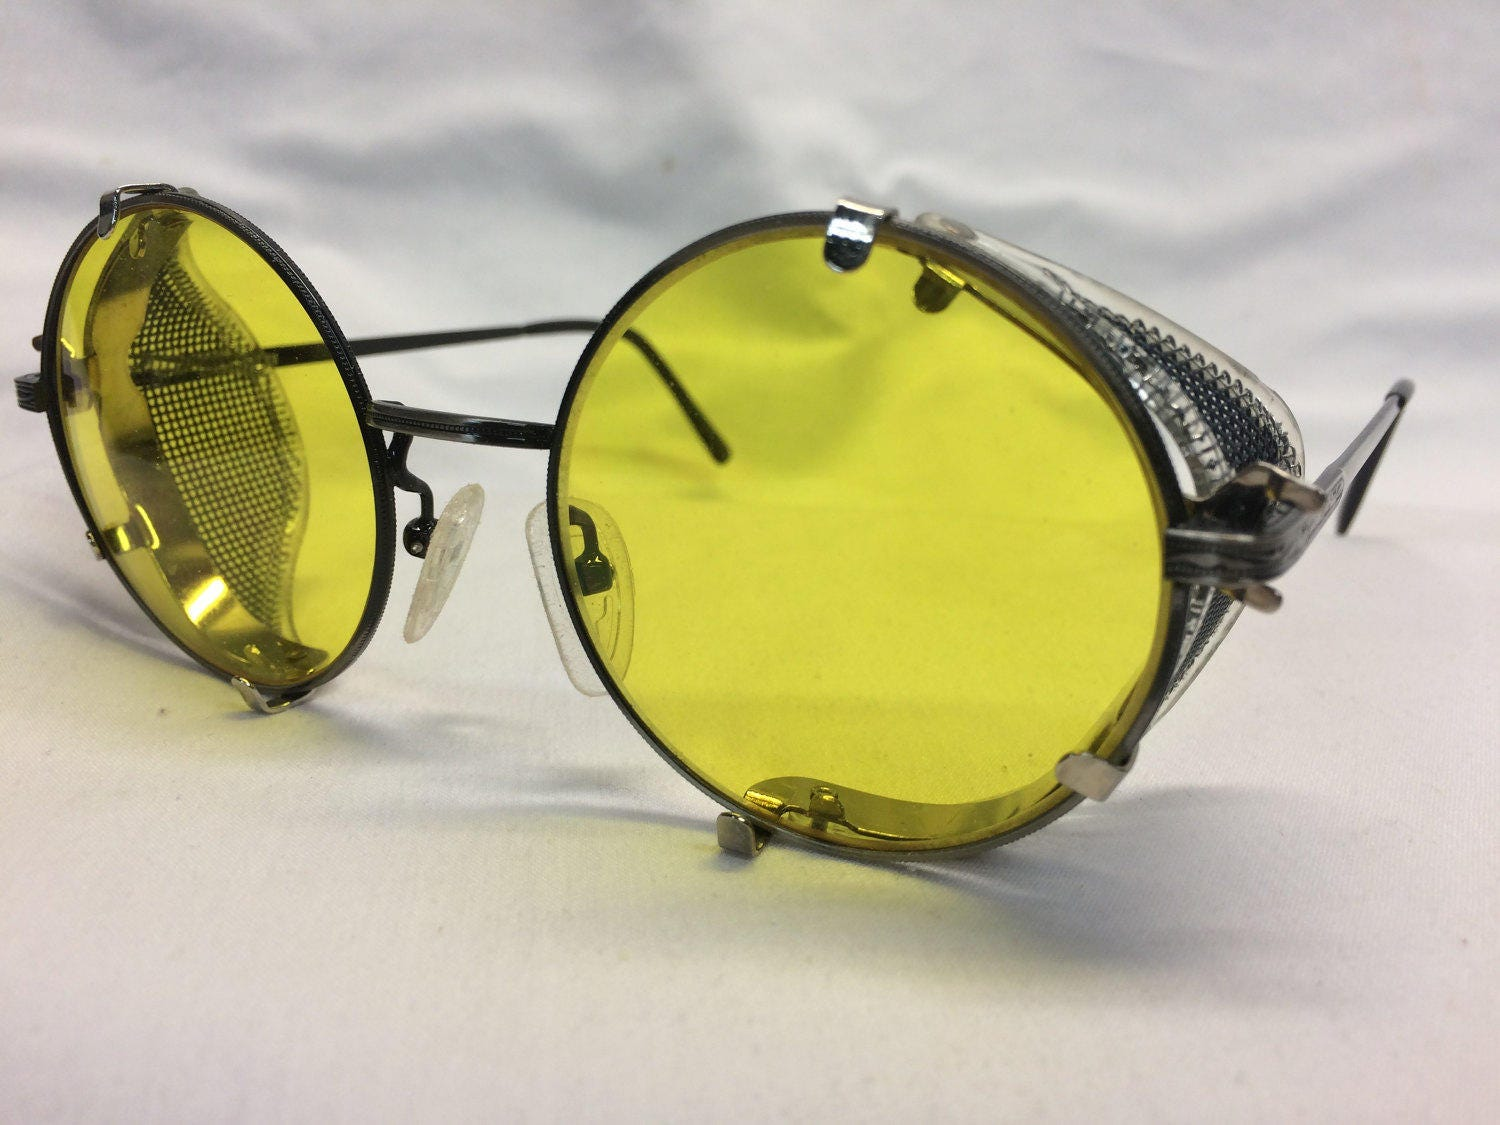 Jean lafont eyeglasses frames - Ghostbusters Metal Round Glasses Dr Holtzmann Inspired Yellow Lens Side Shields